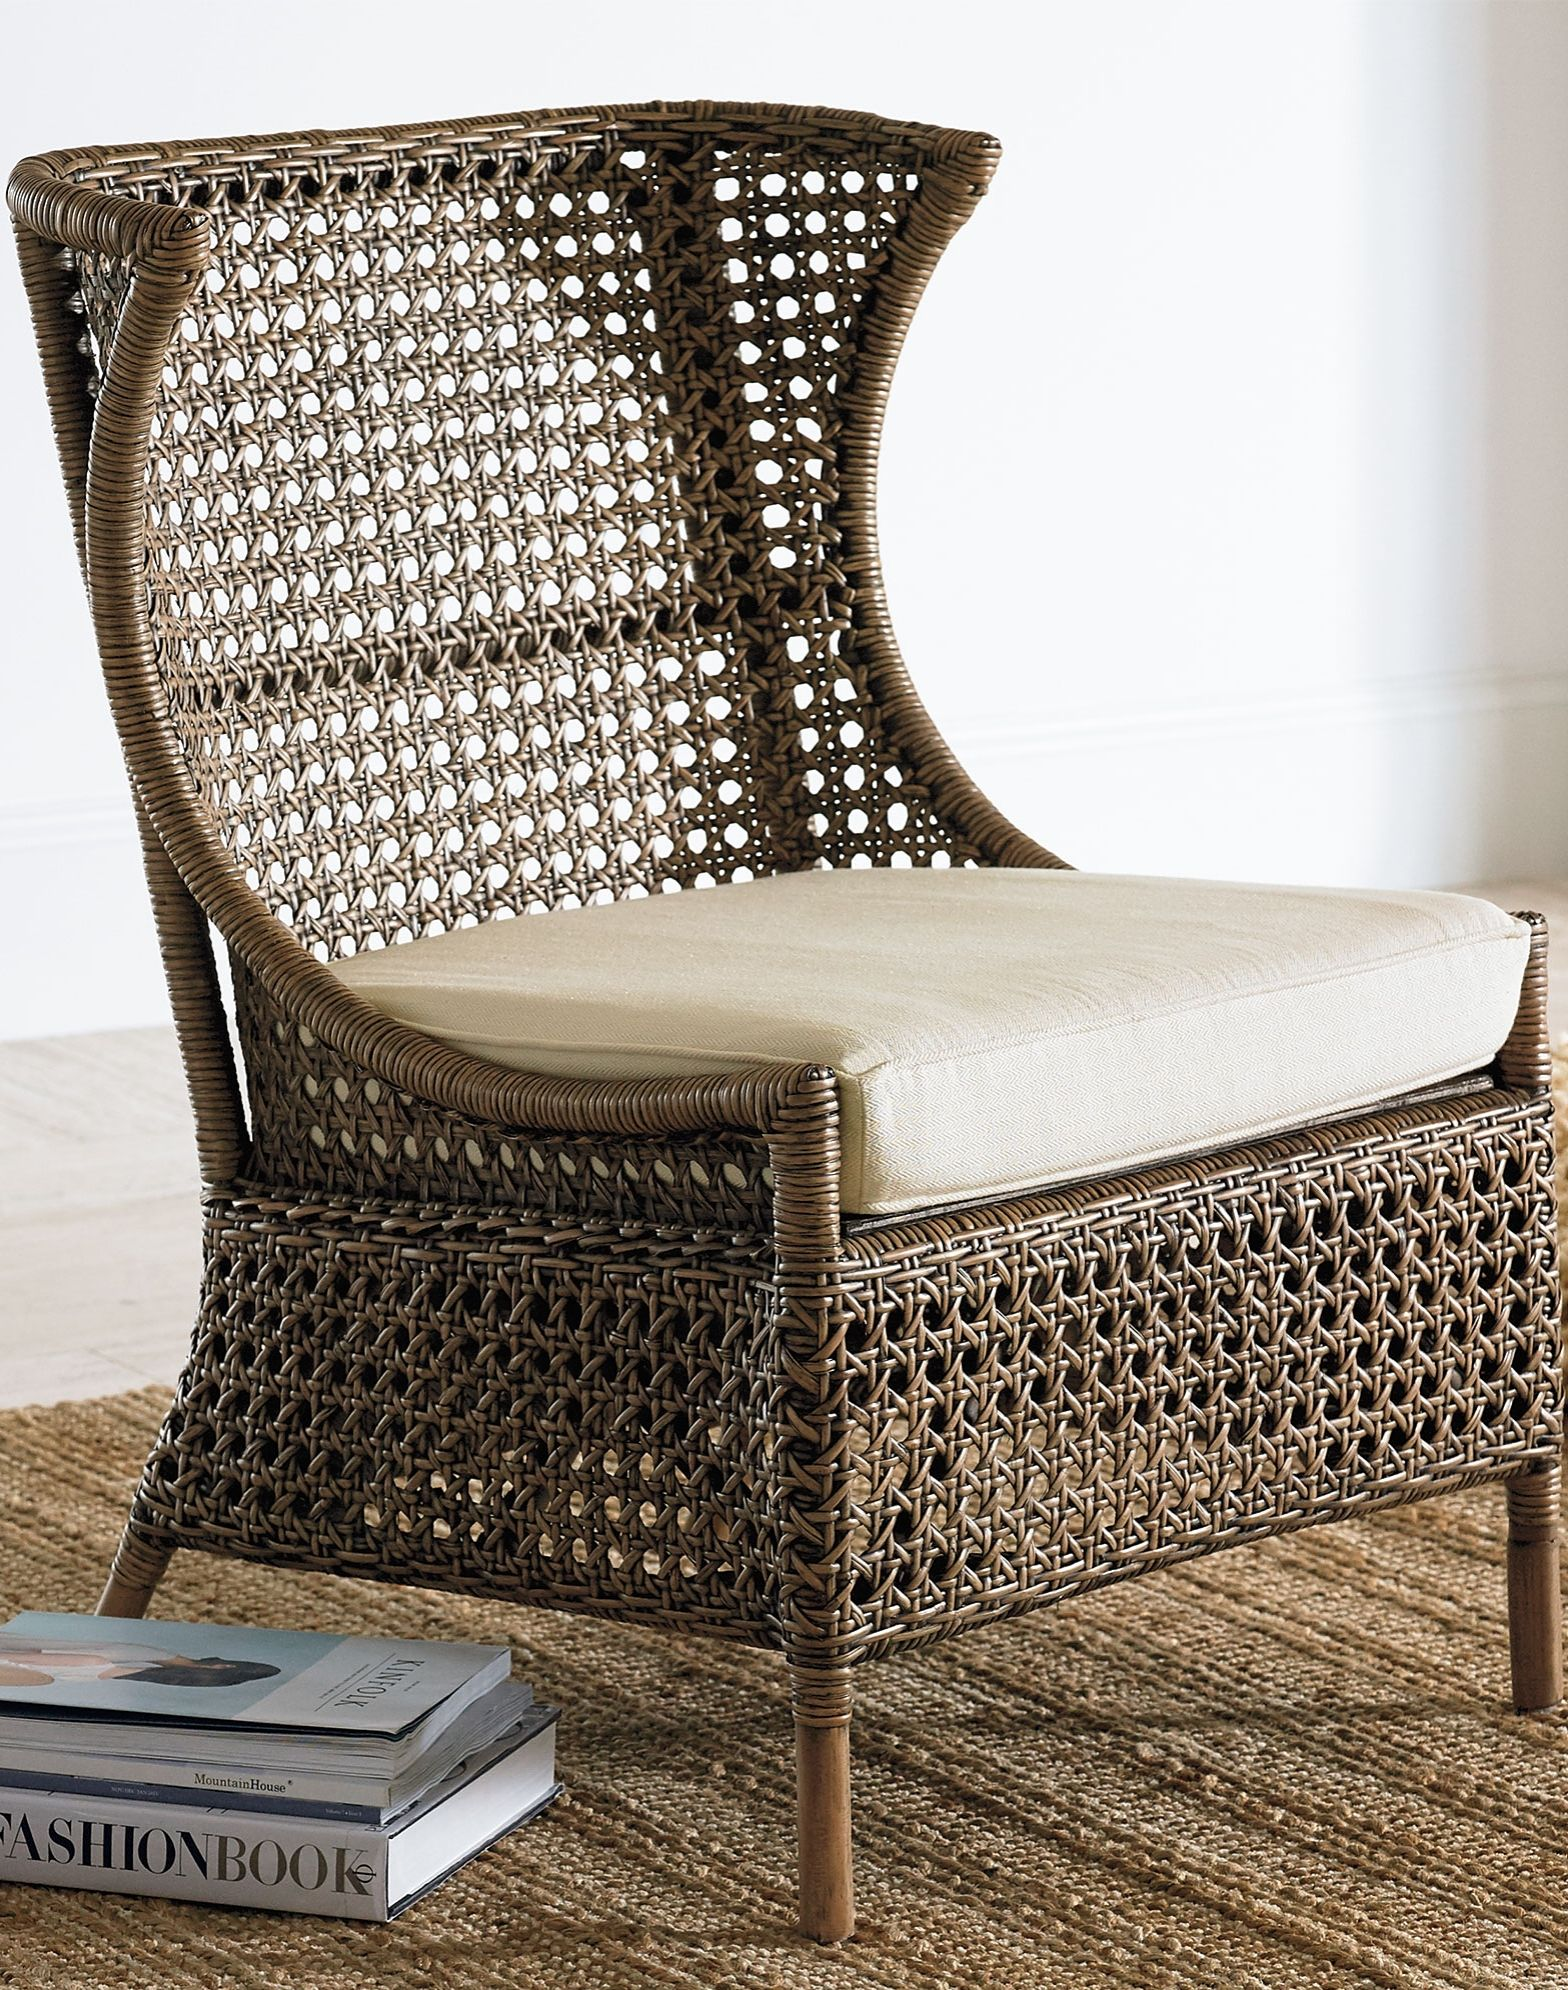 Two Stylish High Back Rattan Chairs Delight With Two Different Looks. Marco  Gives A Rattan Twist To The Traditional Wingback.